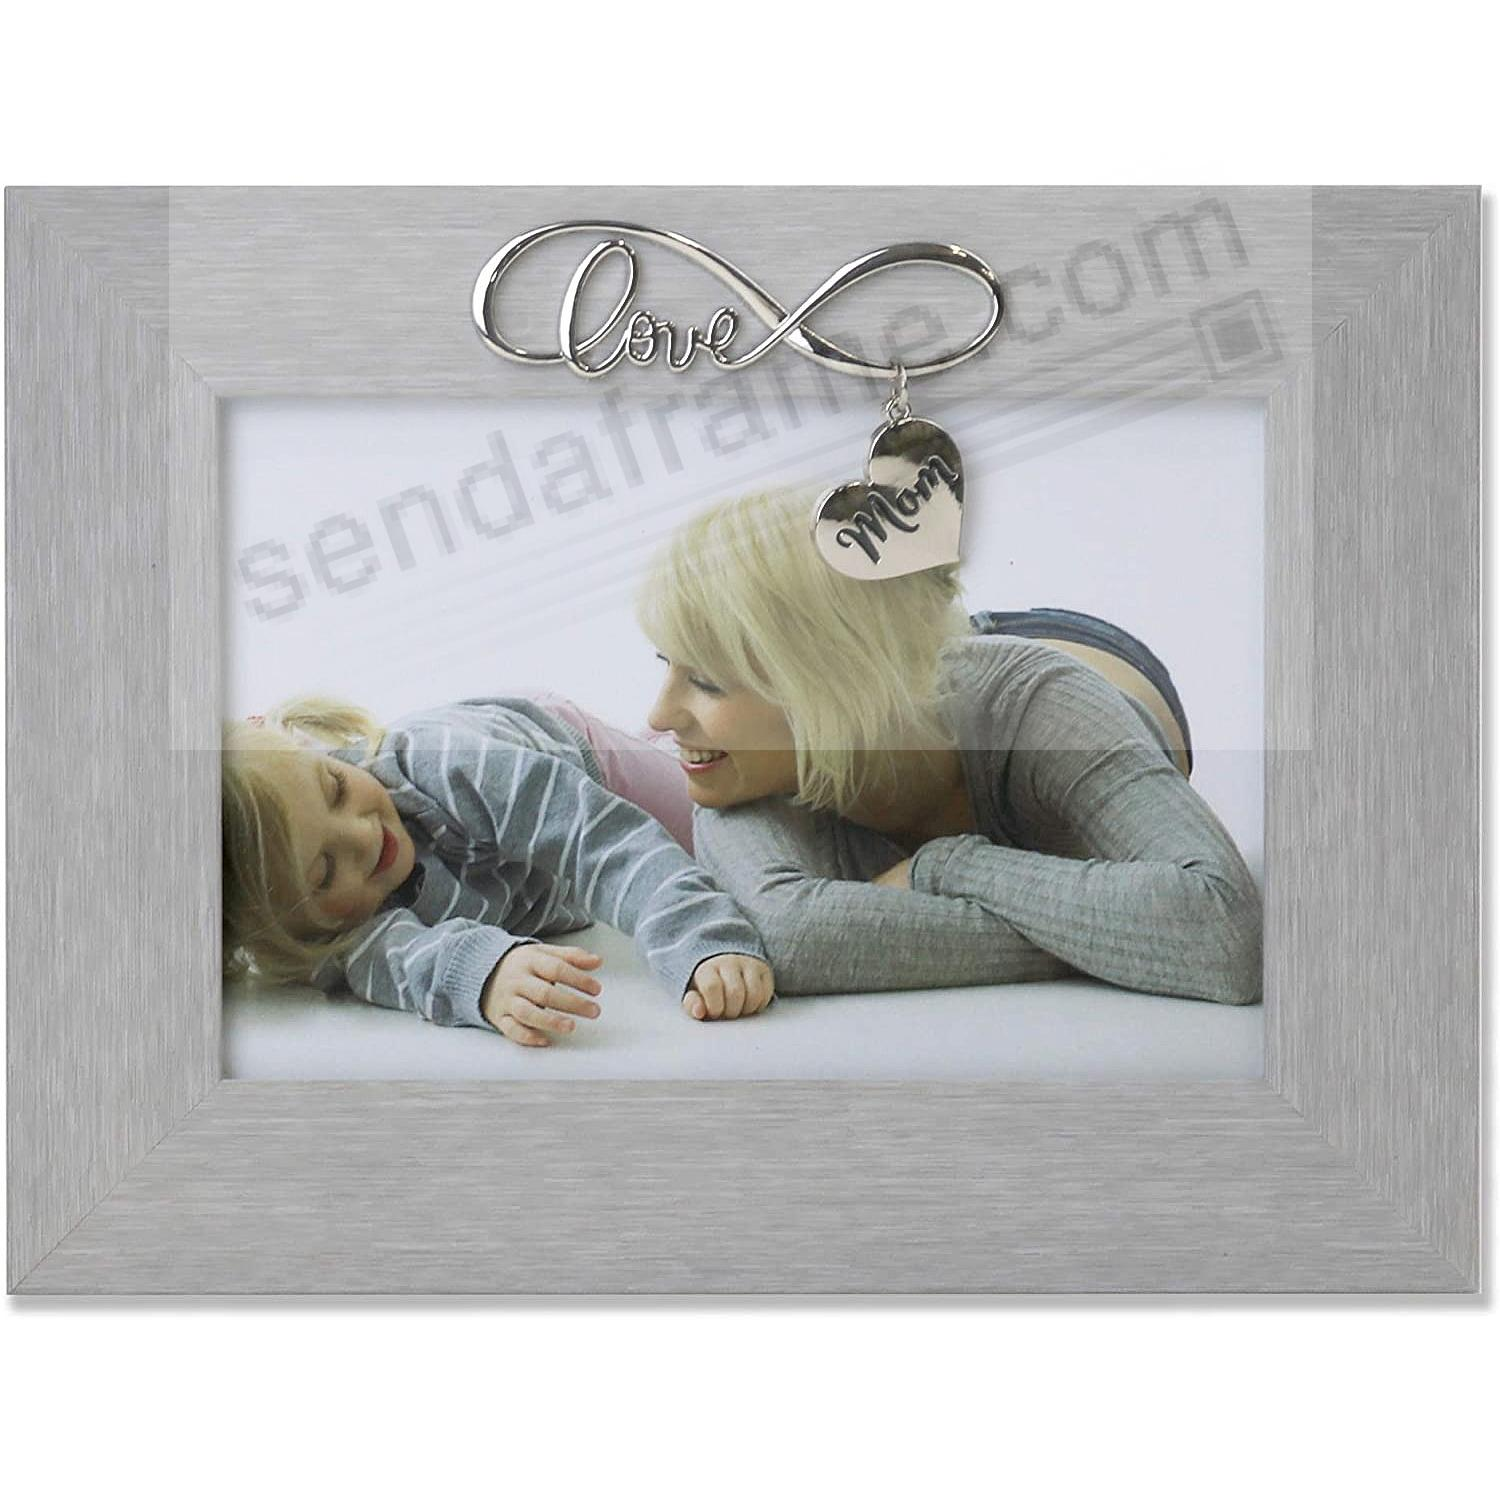 The INFINITY MOM Heart frame by Lawrence®